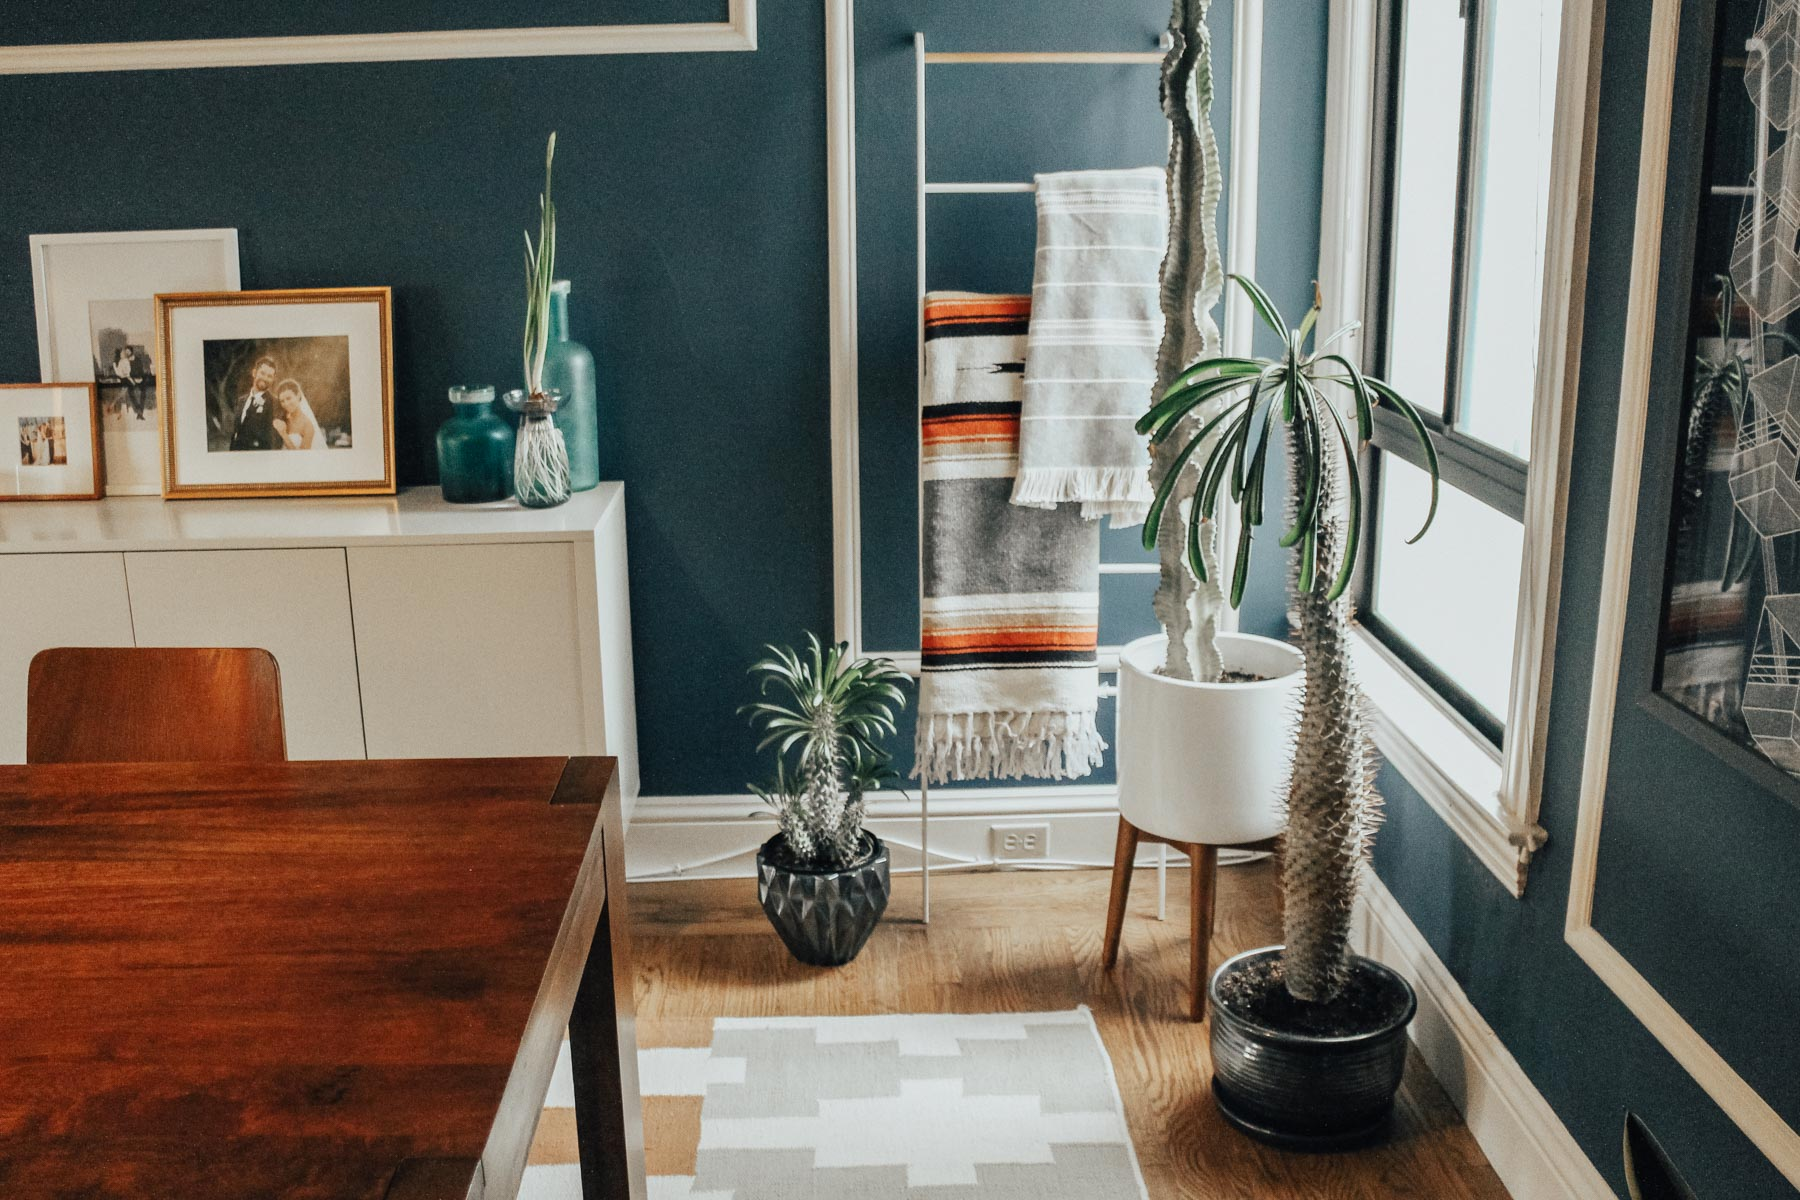 Basic Tips for Taking Care of Indoor Plants